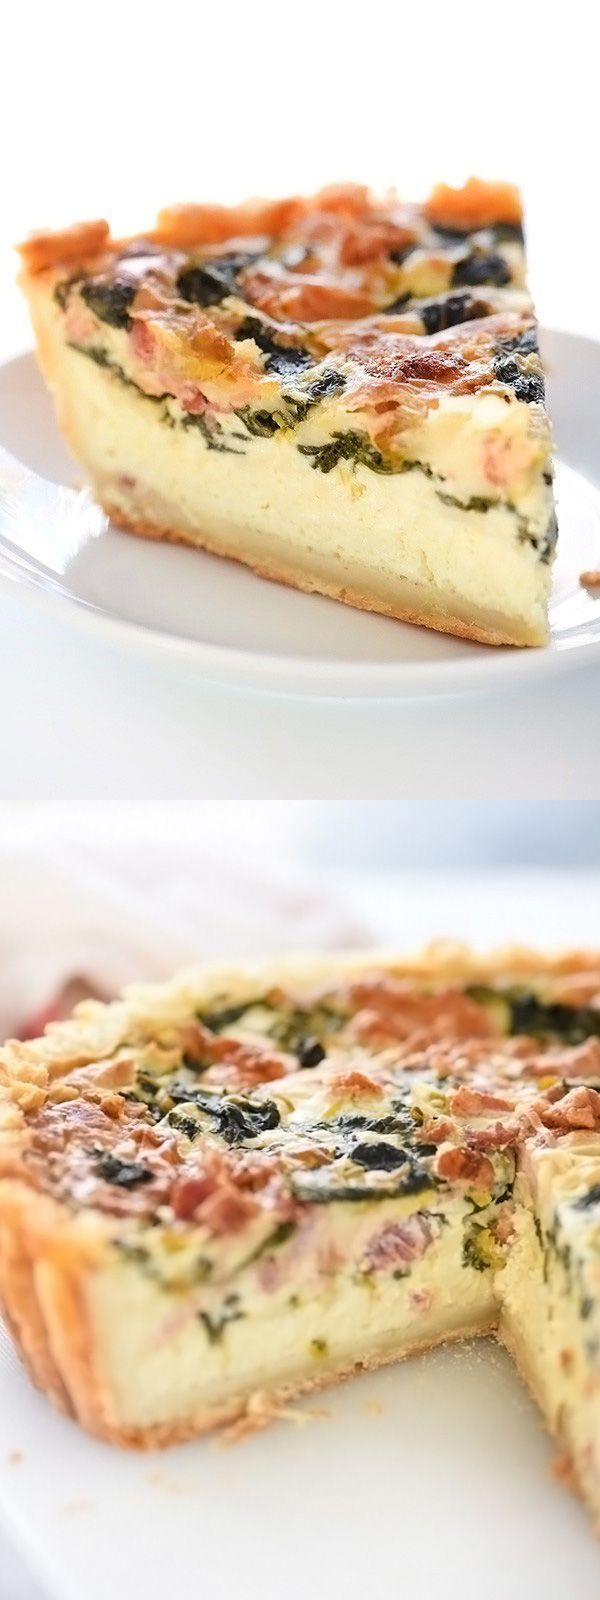 Deep-Dish Spinach, Leek and Bacon Quiche is made lighter with greek yogurt in a flaky, cream cheese crust   foodiecrush.com